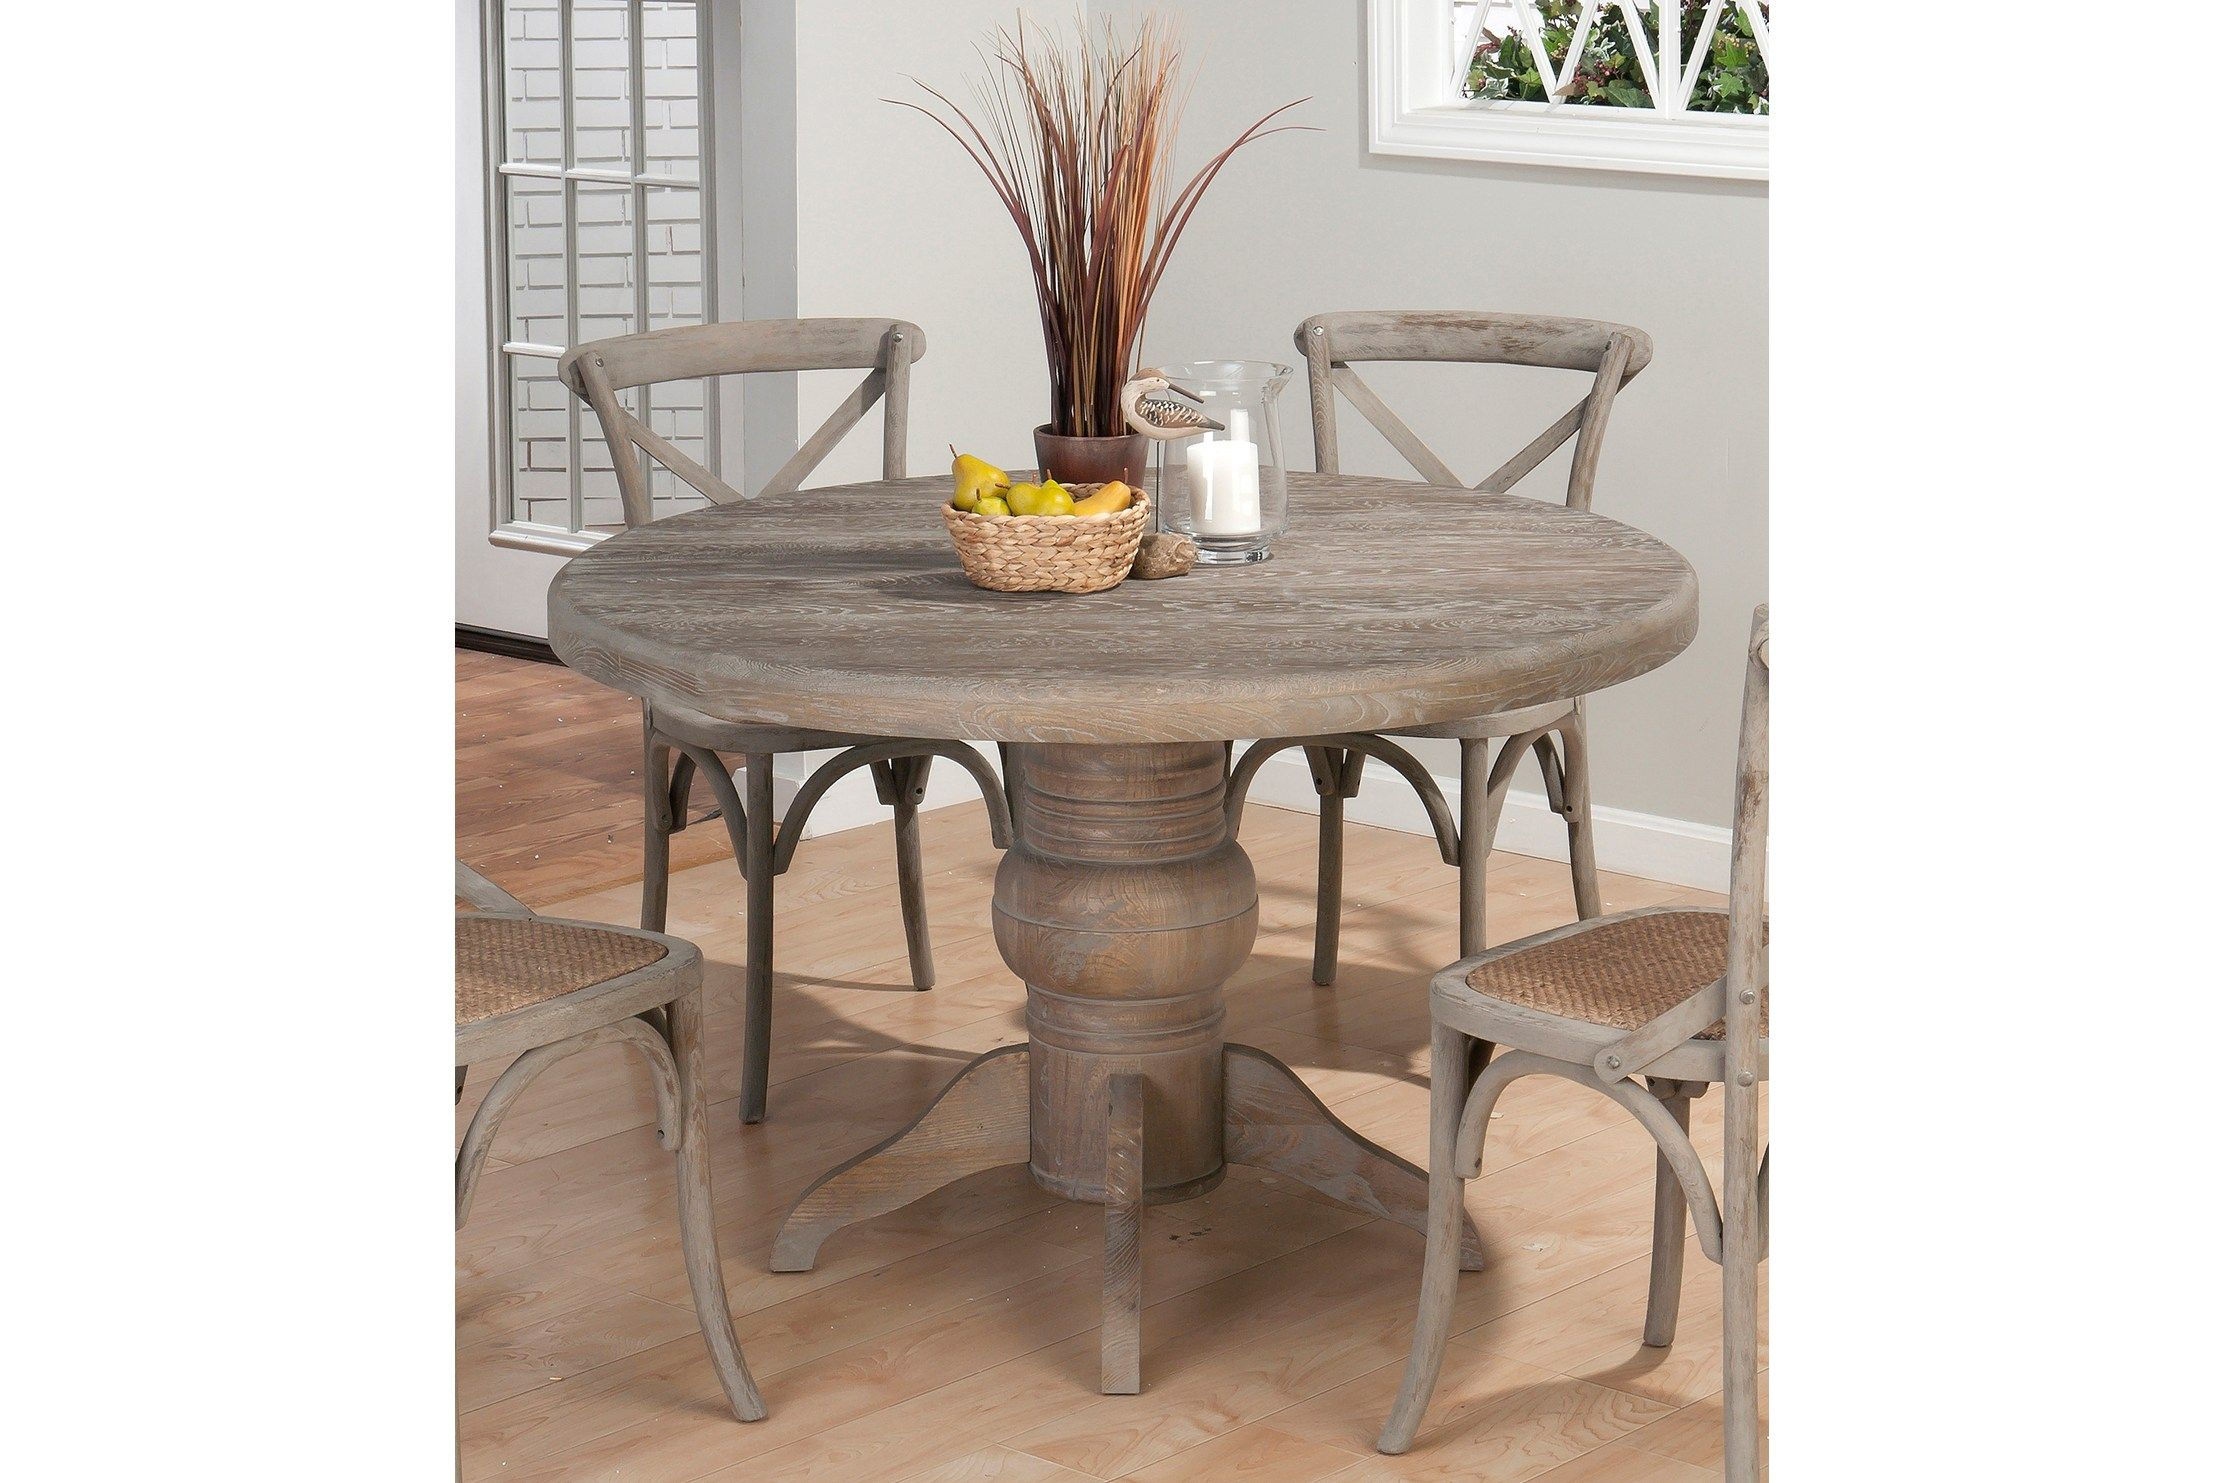 driftwood dining table base modern coffee tables and accent tables. Black Bedroom Furniture Sets. Home Design Ideas